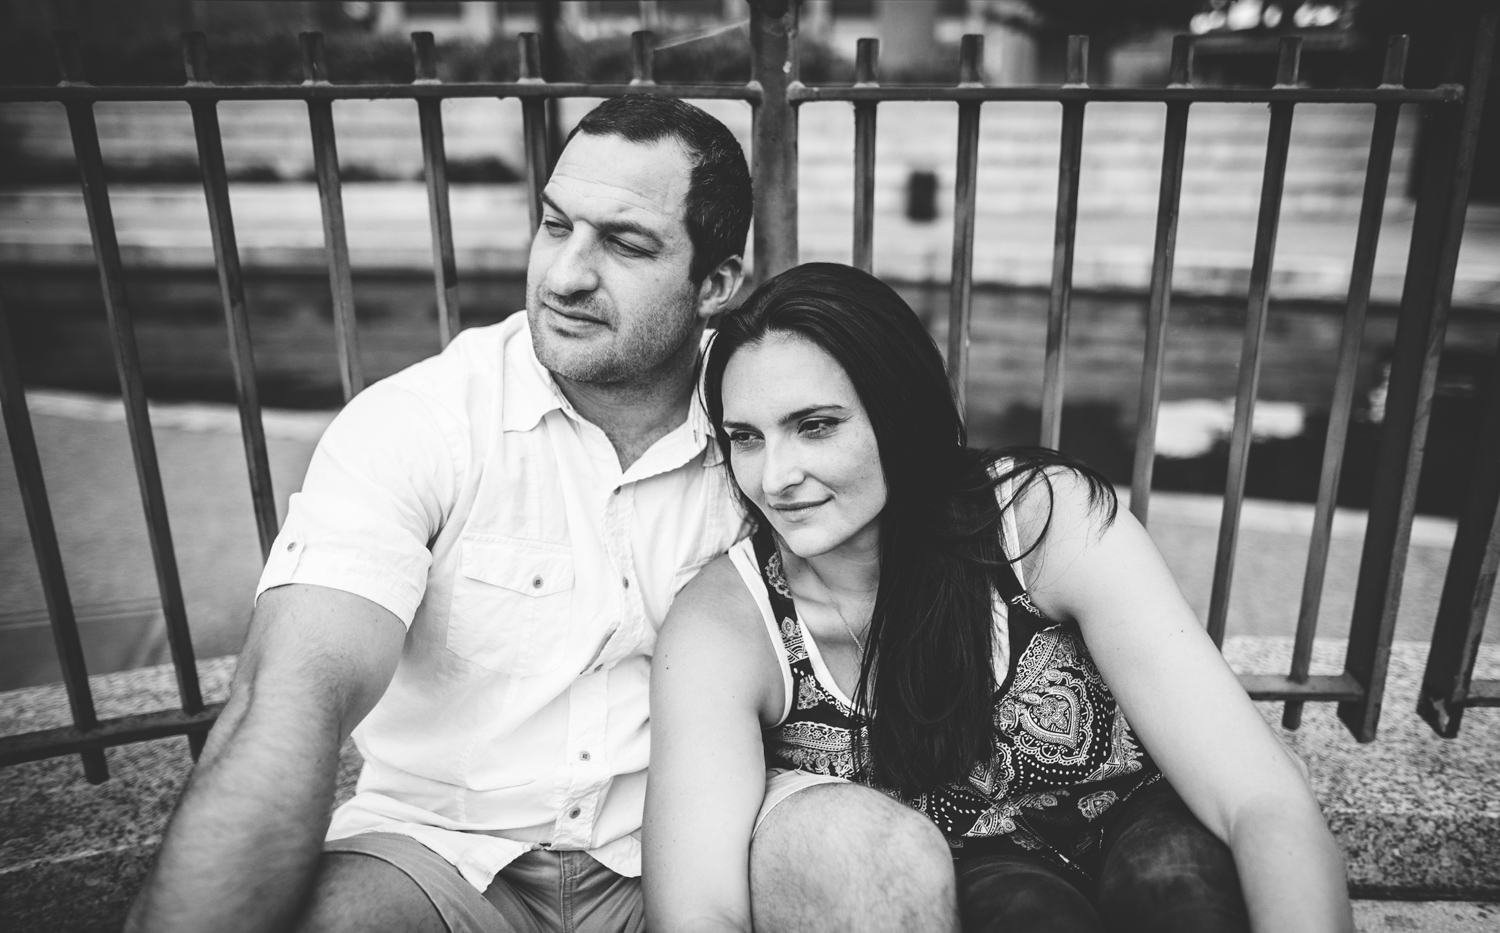 003 black and white portrait of couple sitting down looking off into distance.jpg